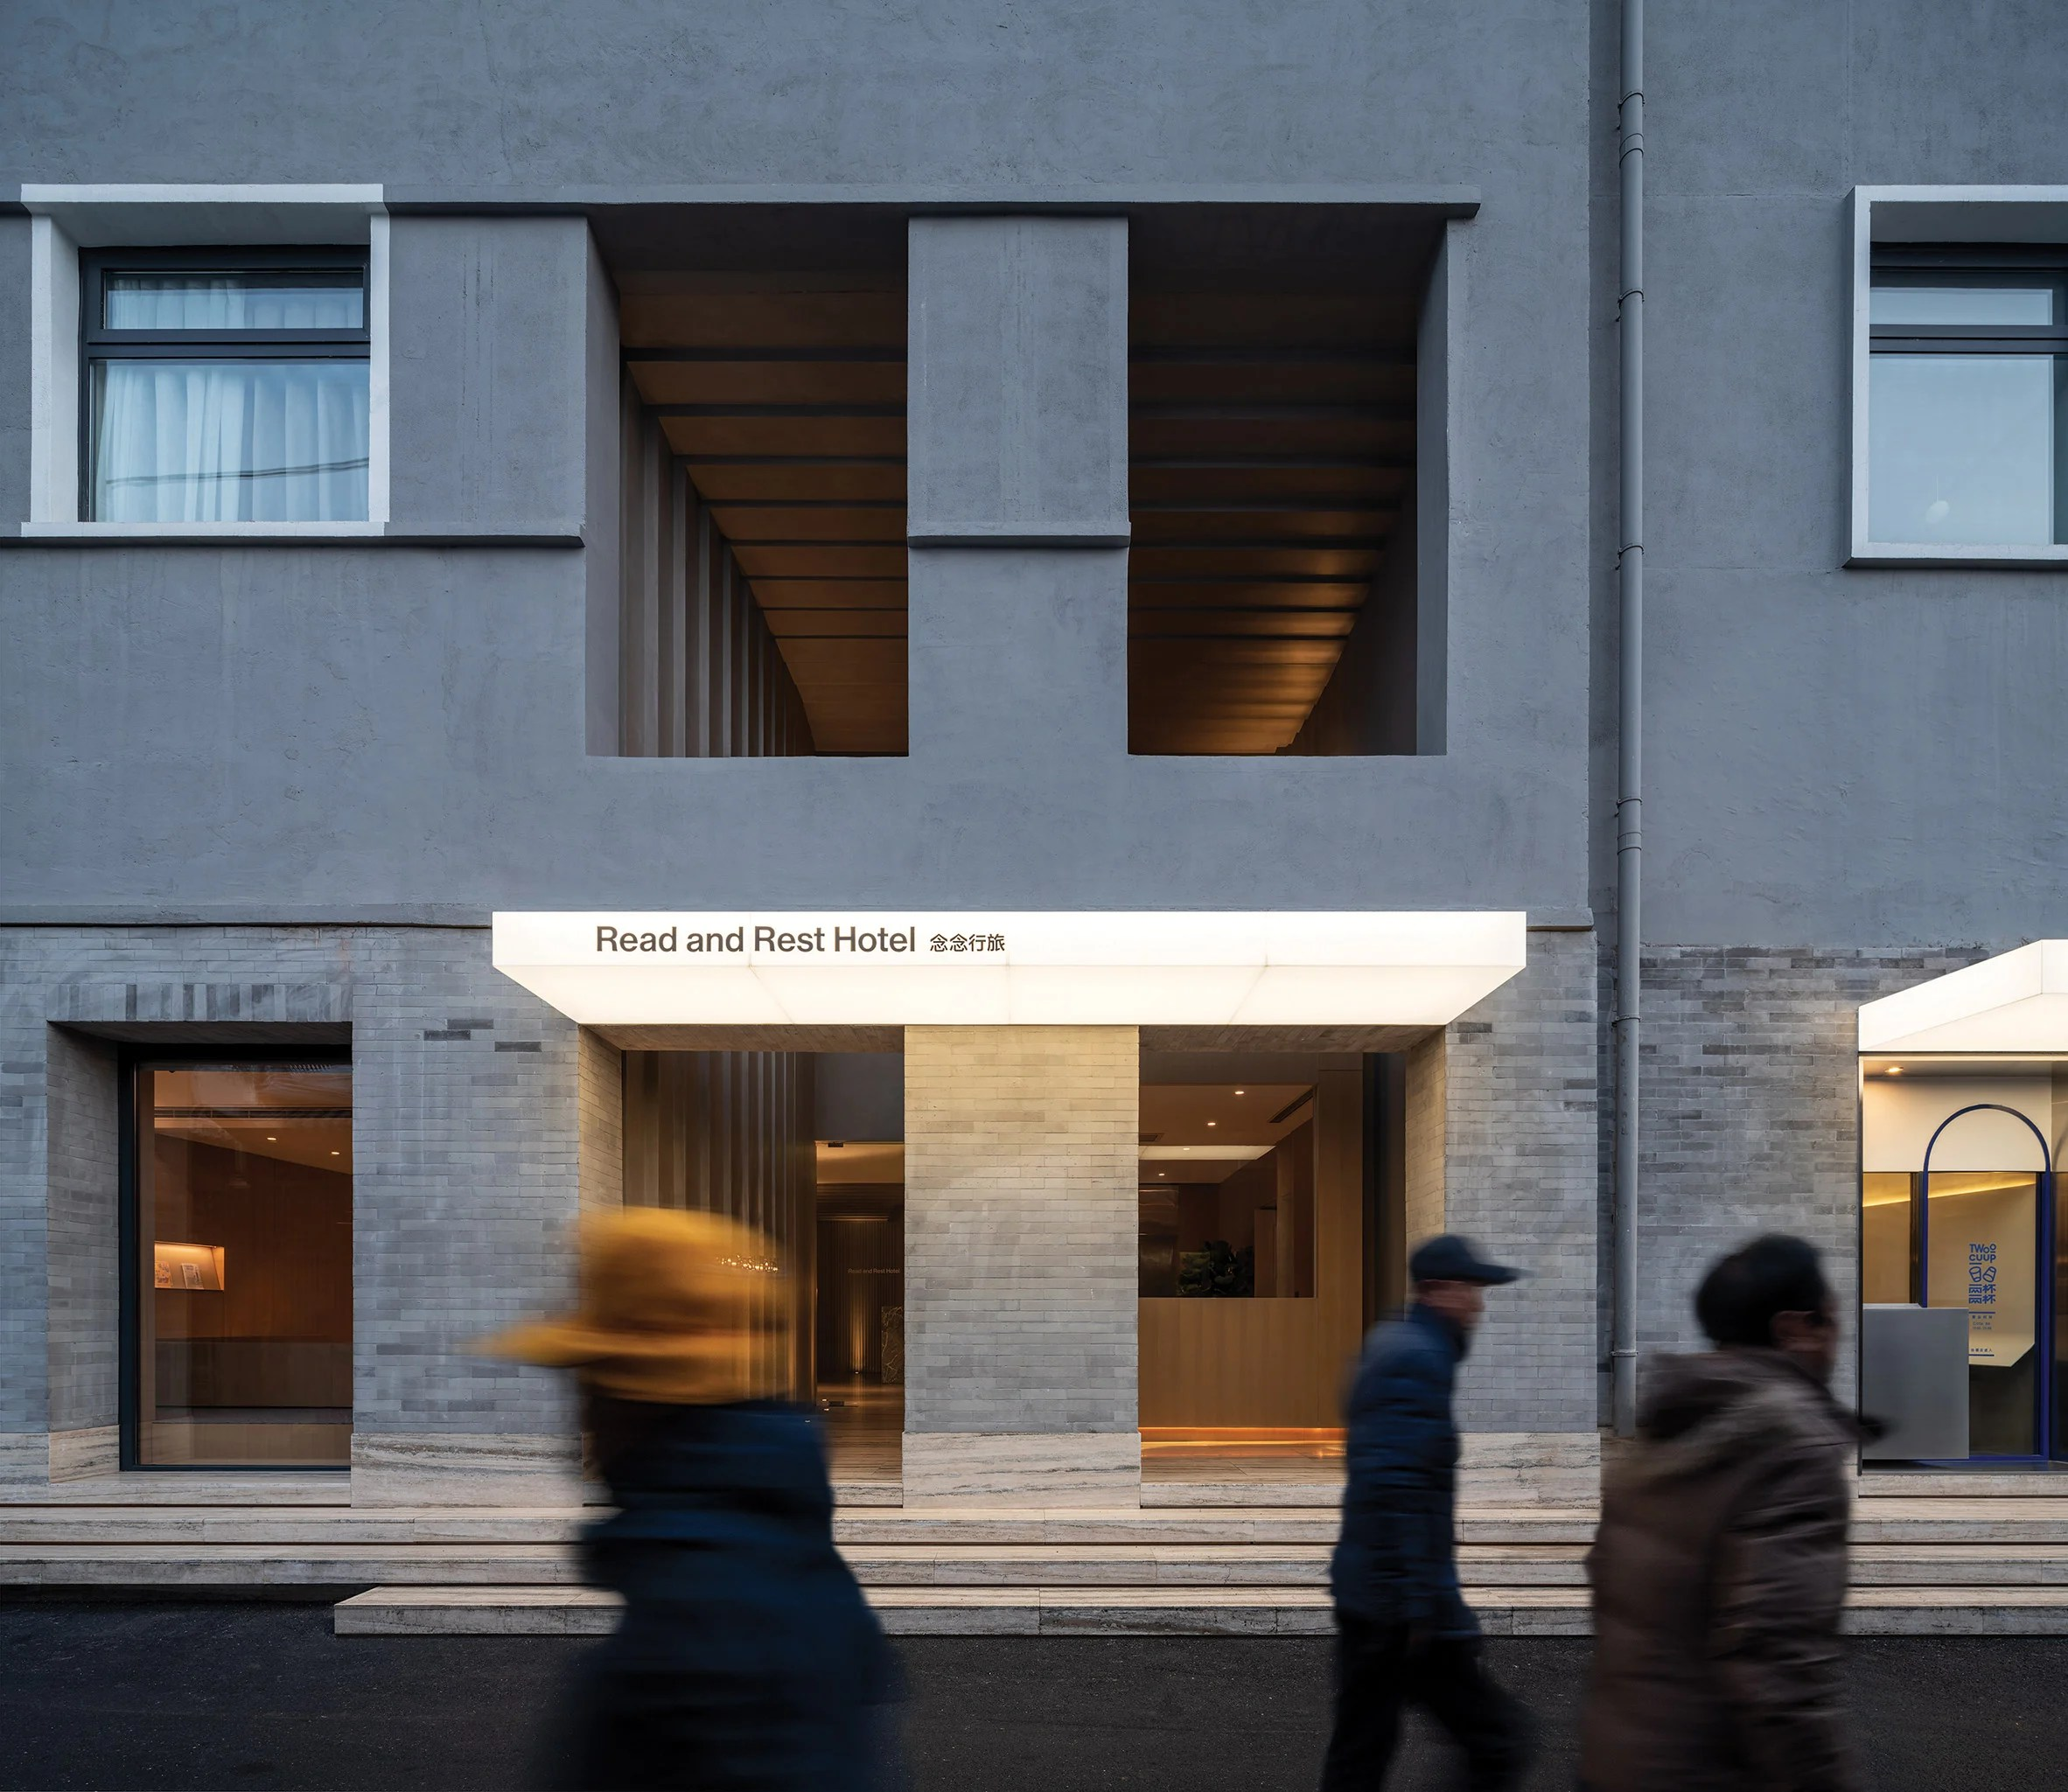 Read and Rest Hotel by Office AIO